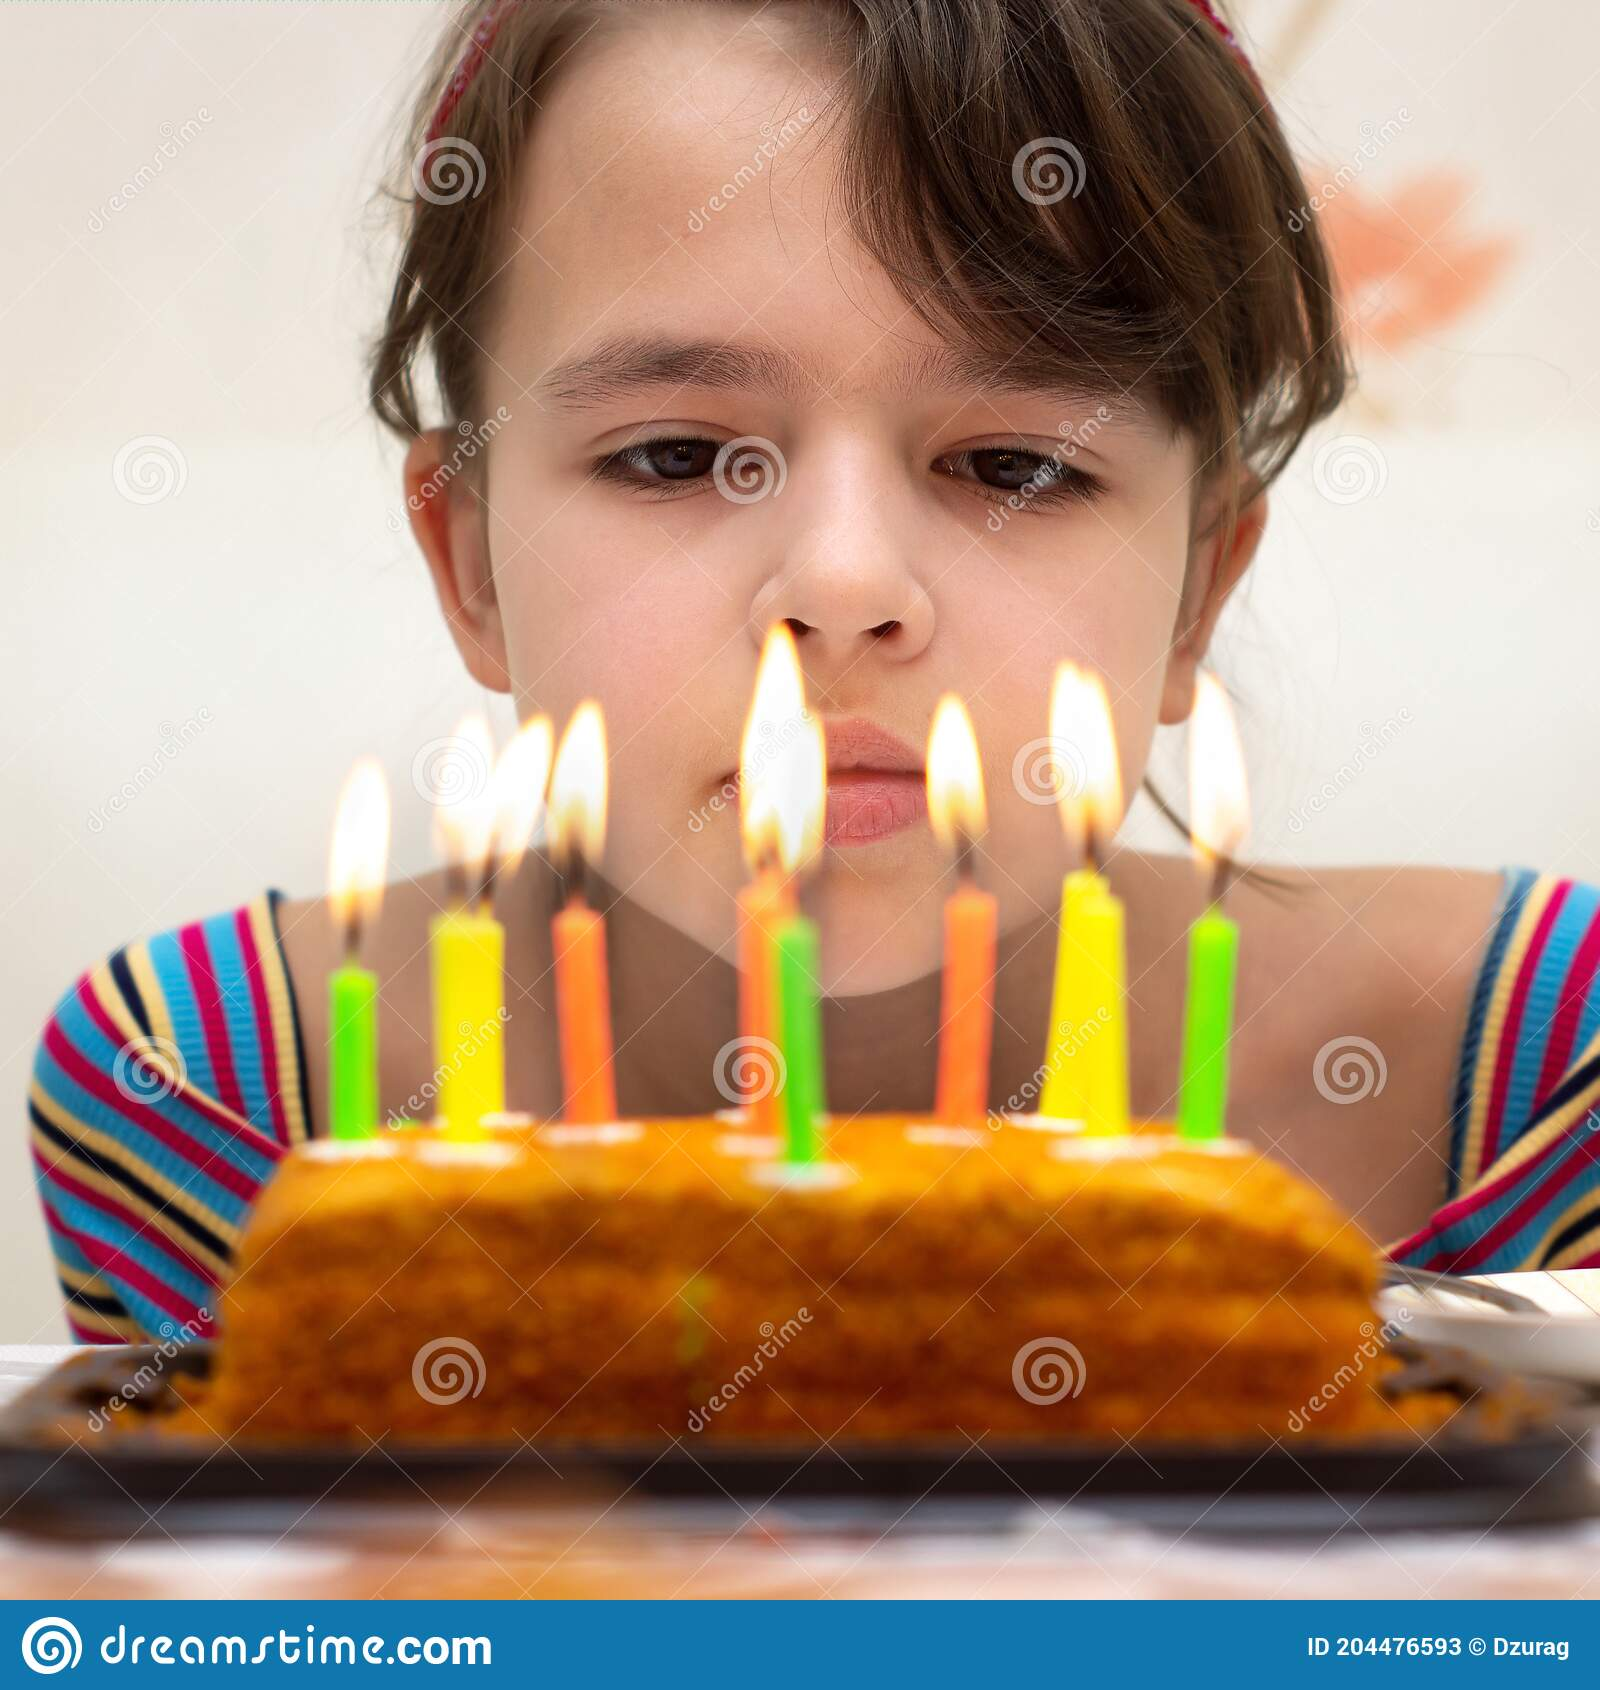 Twelve Years Old Girl Looks Thoughtfully At The Burning Candles On The Birthday Cake Stock Image Image Of Girl Birthday 204476593